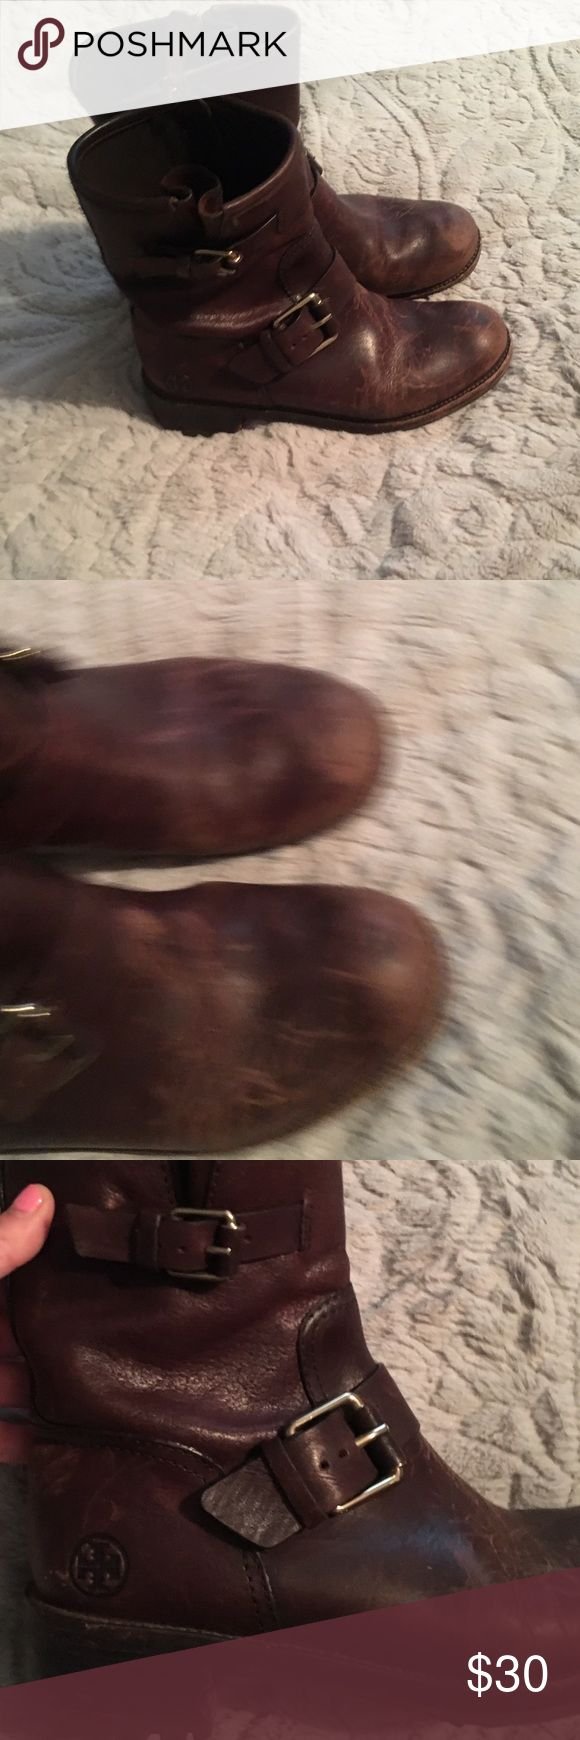 Tory Burch distressed boots Tory Burch Boots, have a vintage look. Added extra distress, so there are a good amount of scratches and wear. Authentic. Calf leather. Everything shown in photos above . Overall good condition. Combat boot style Tory Burch Shoes Combat & Moto Boots